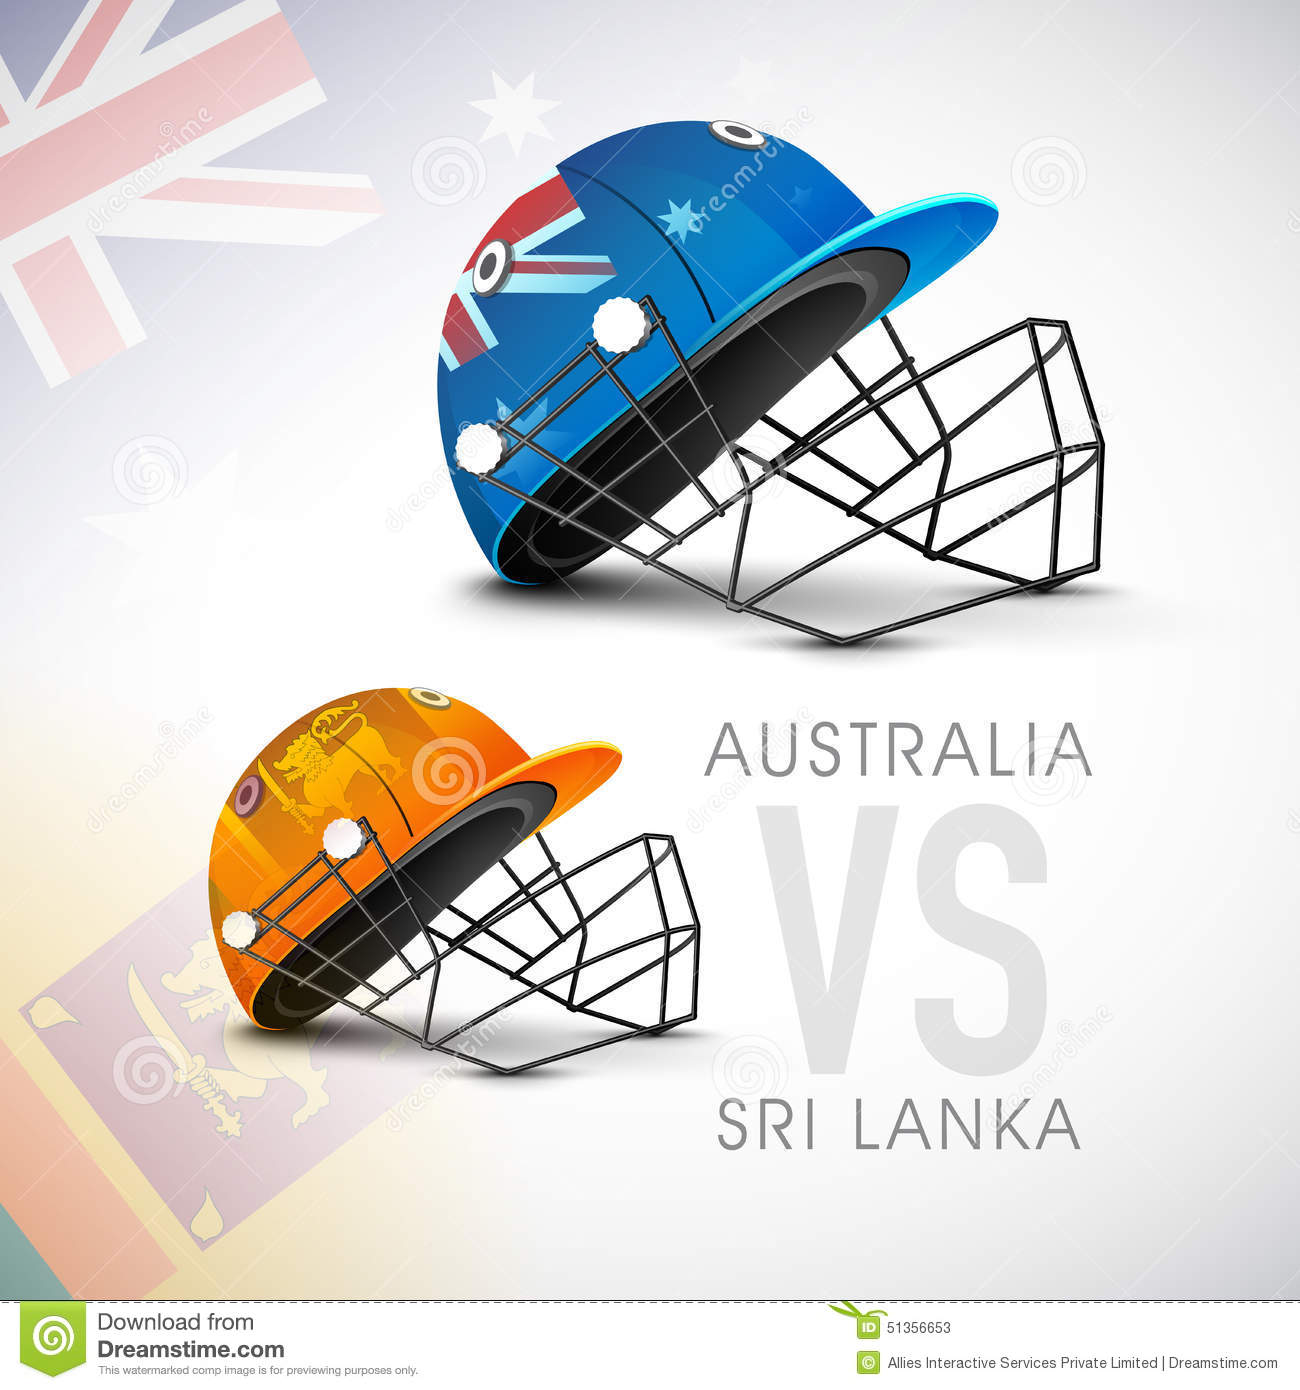 Sri Lanka partita fare